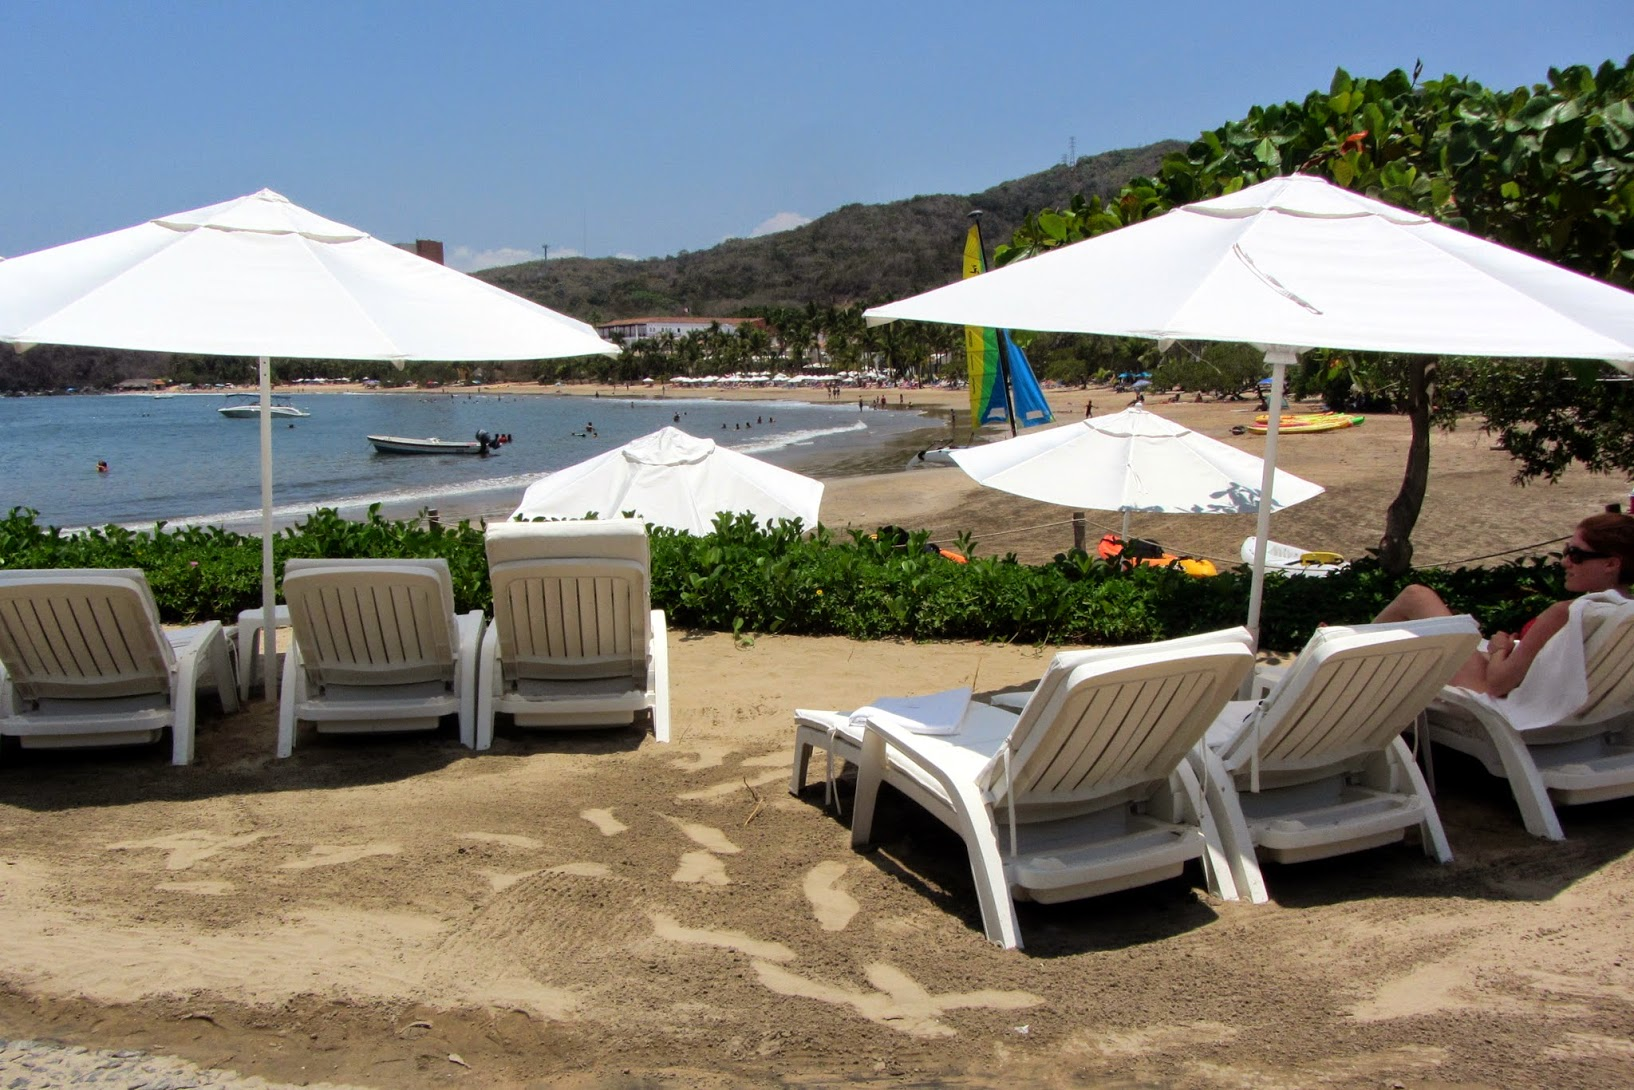 Sombrillas Arena Playa Quieta.JPG